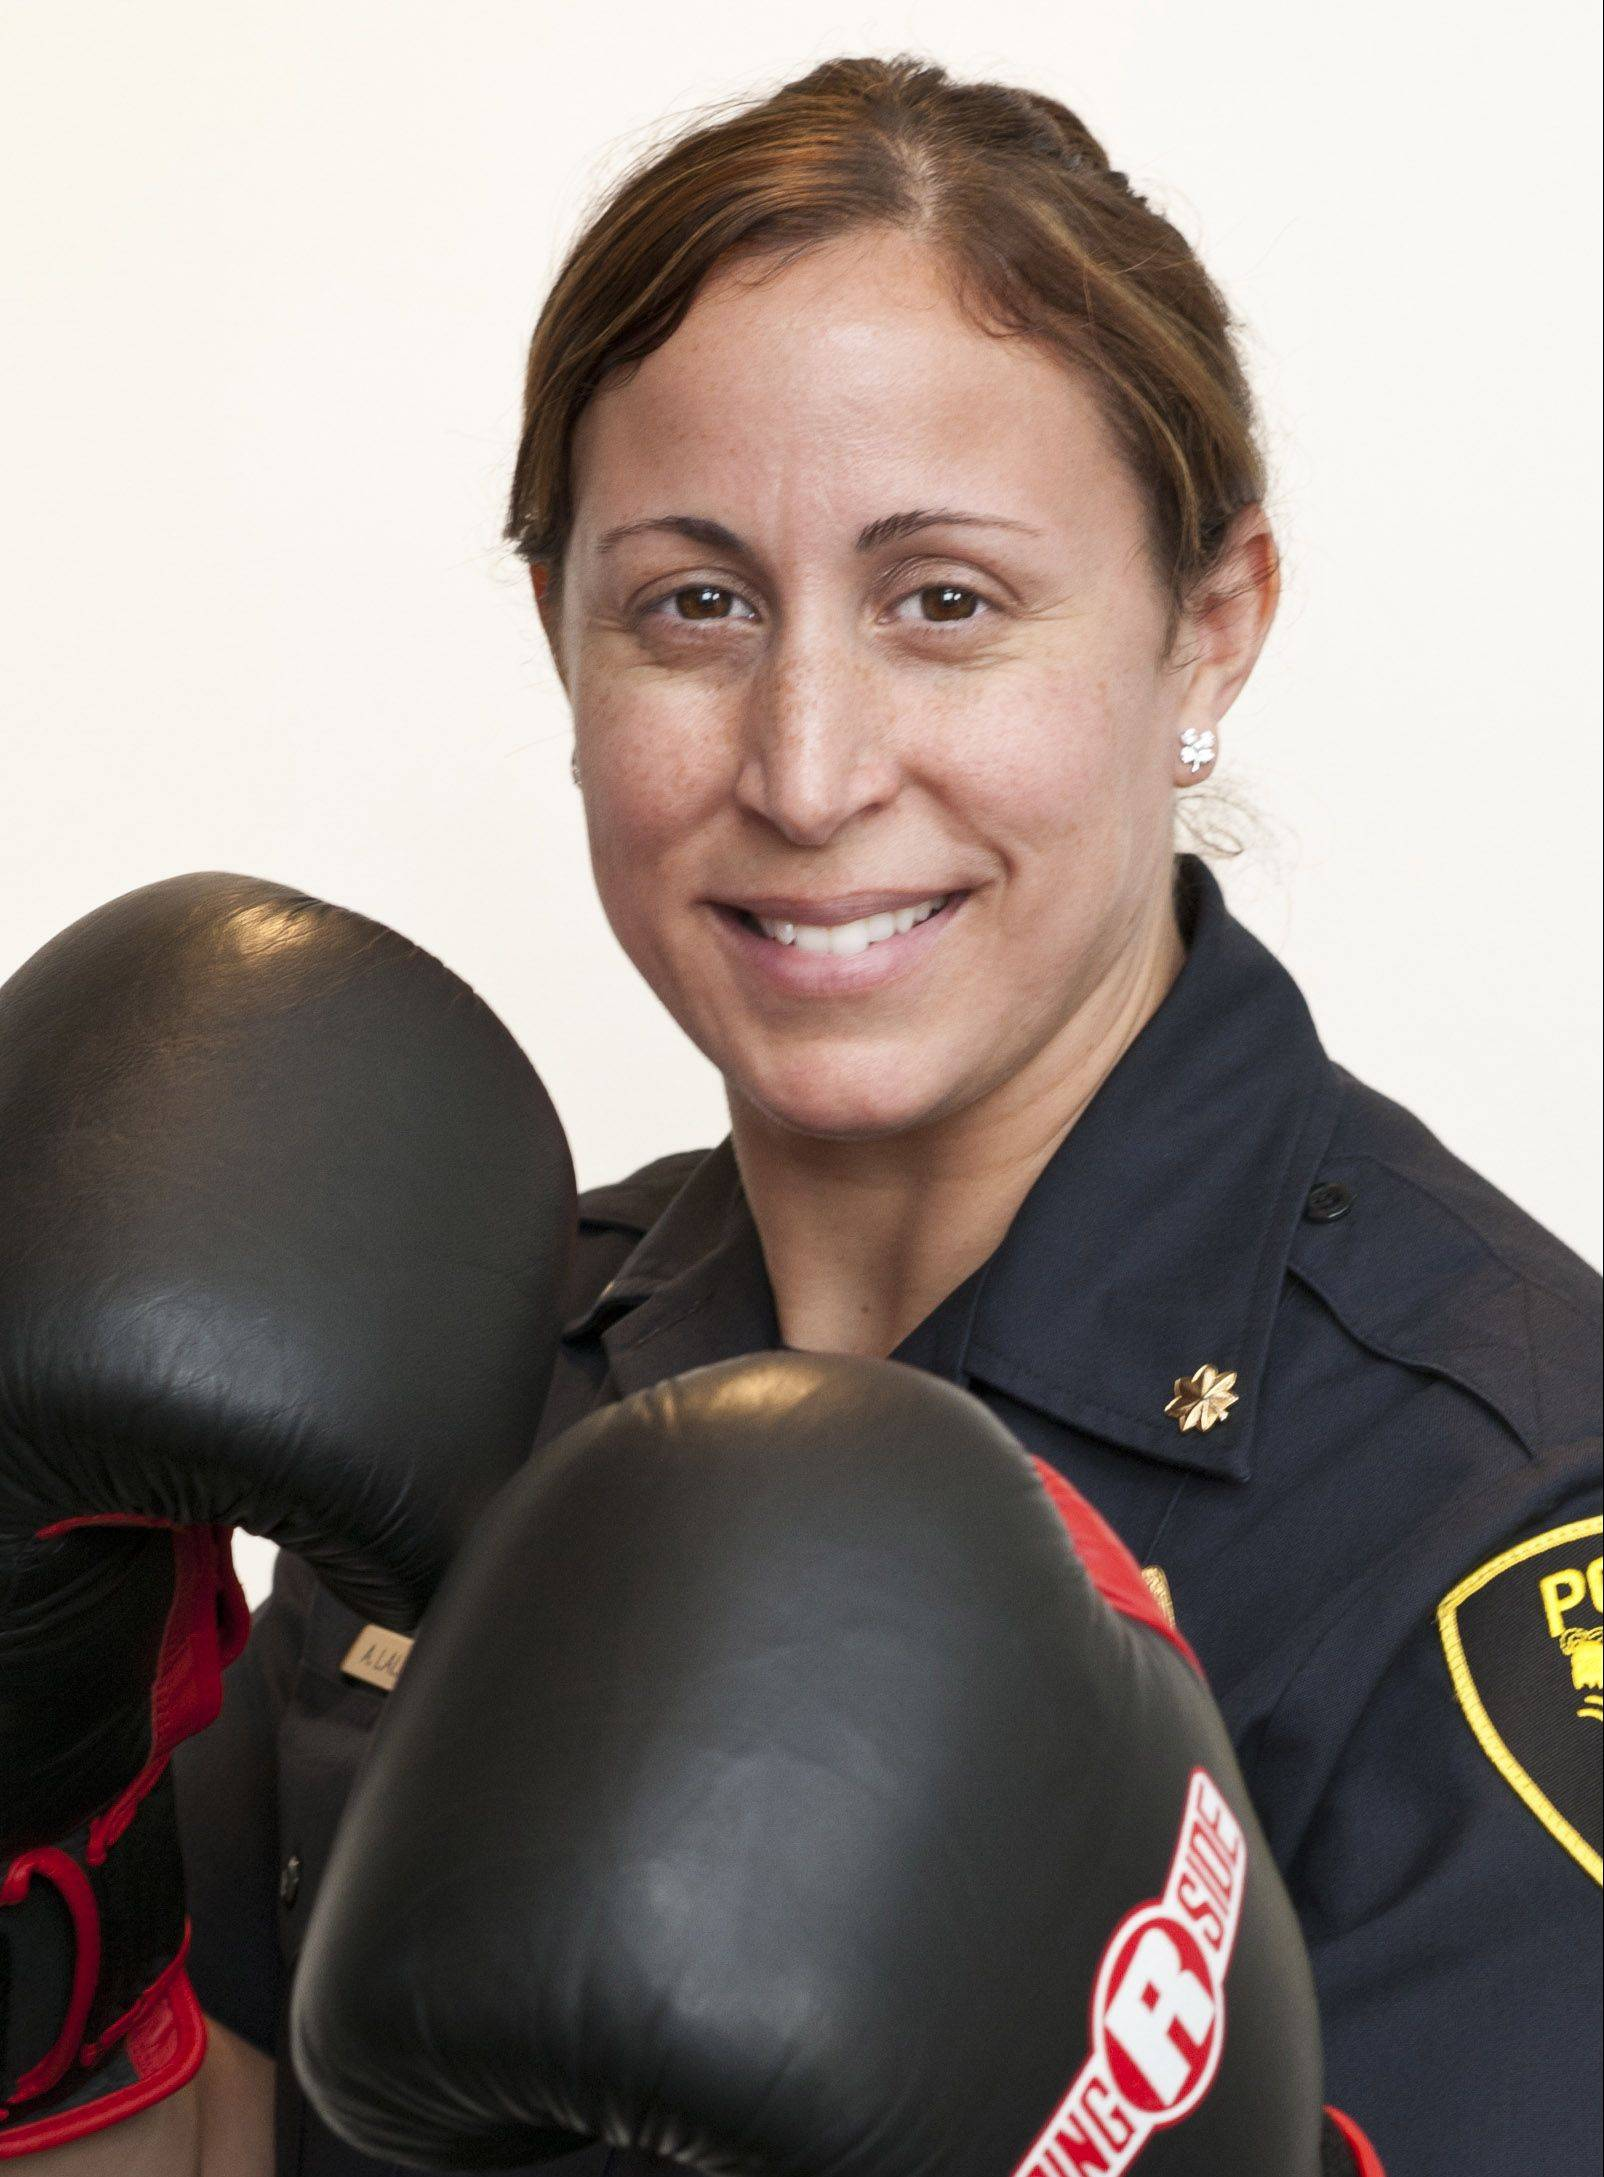 Elgin Police Investigations Cmdr. Ana Lalley